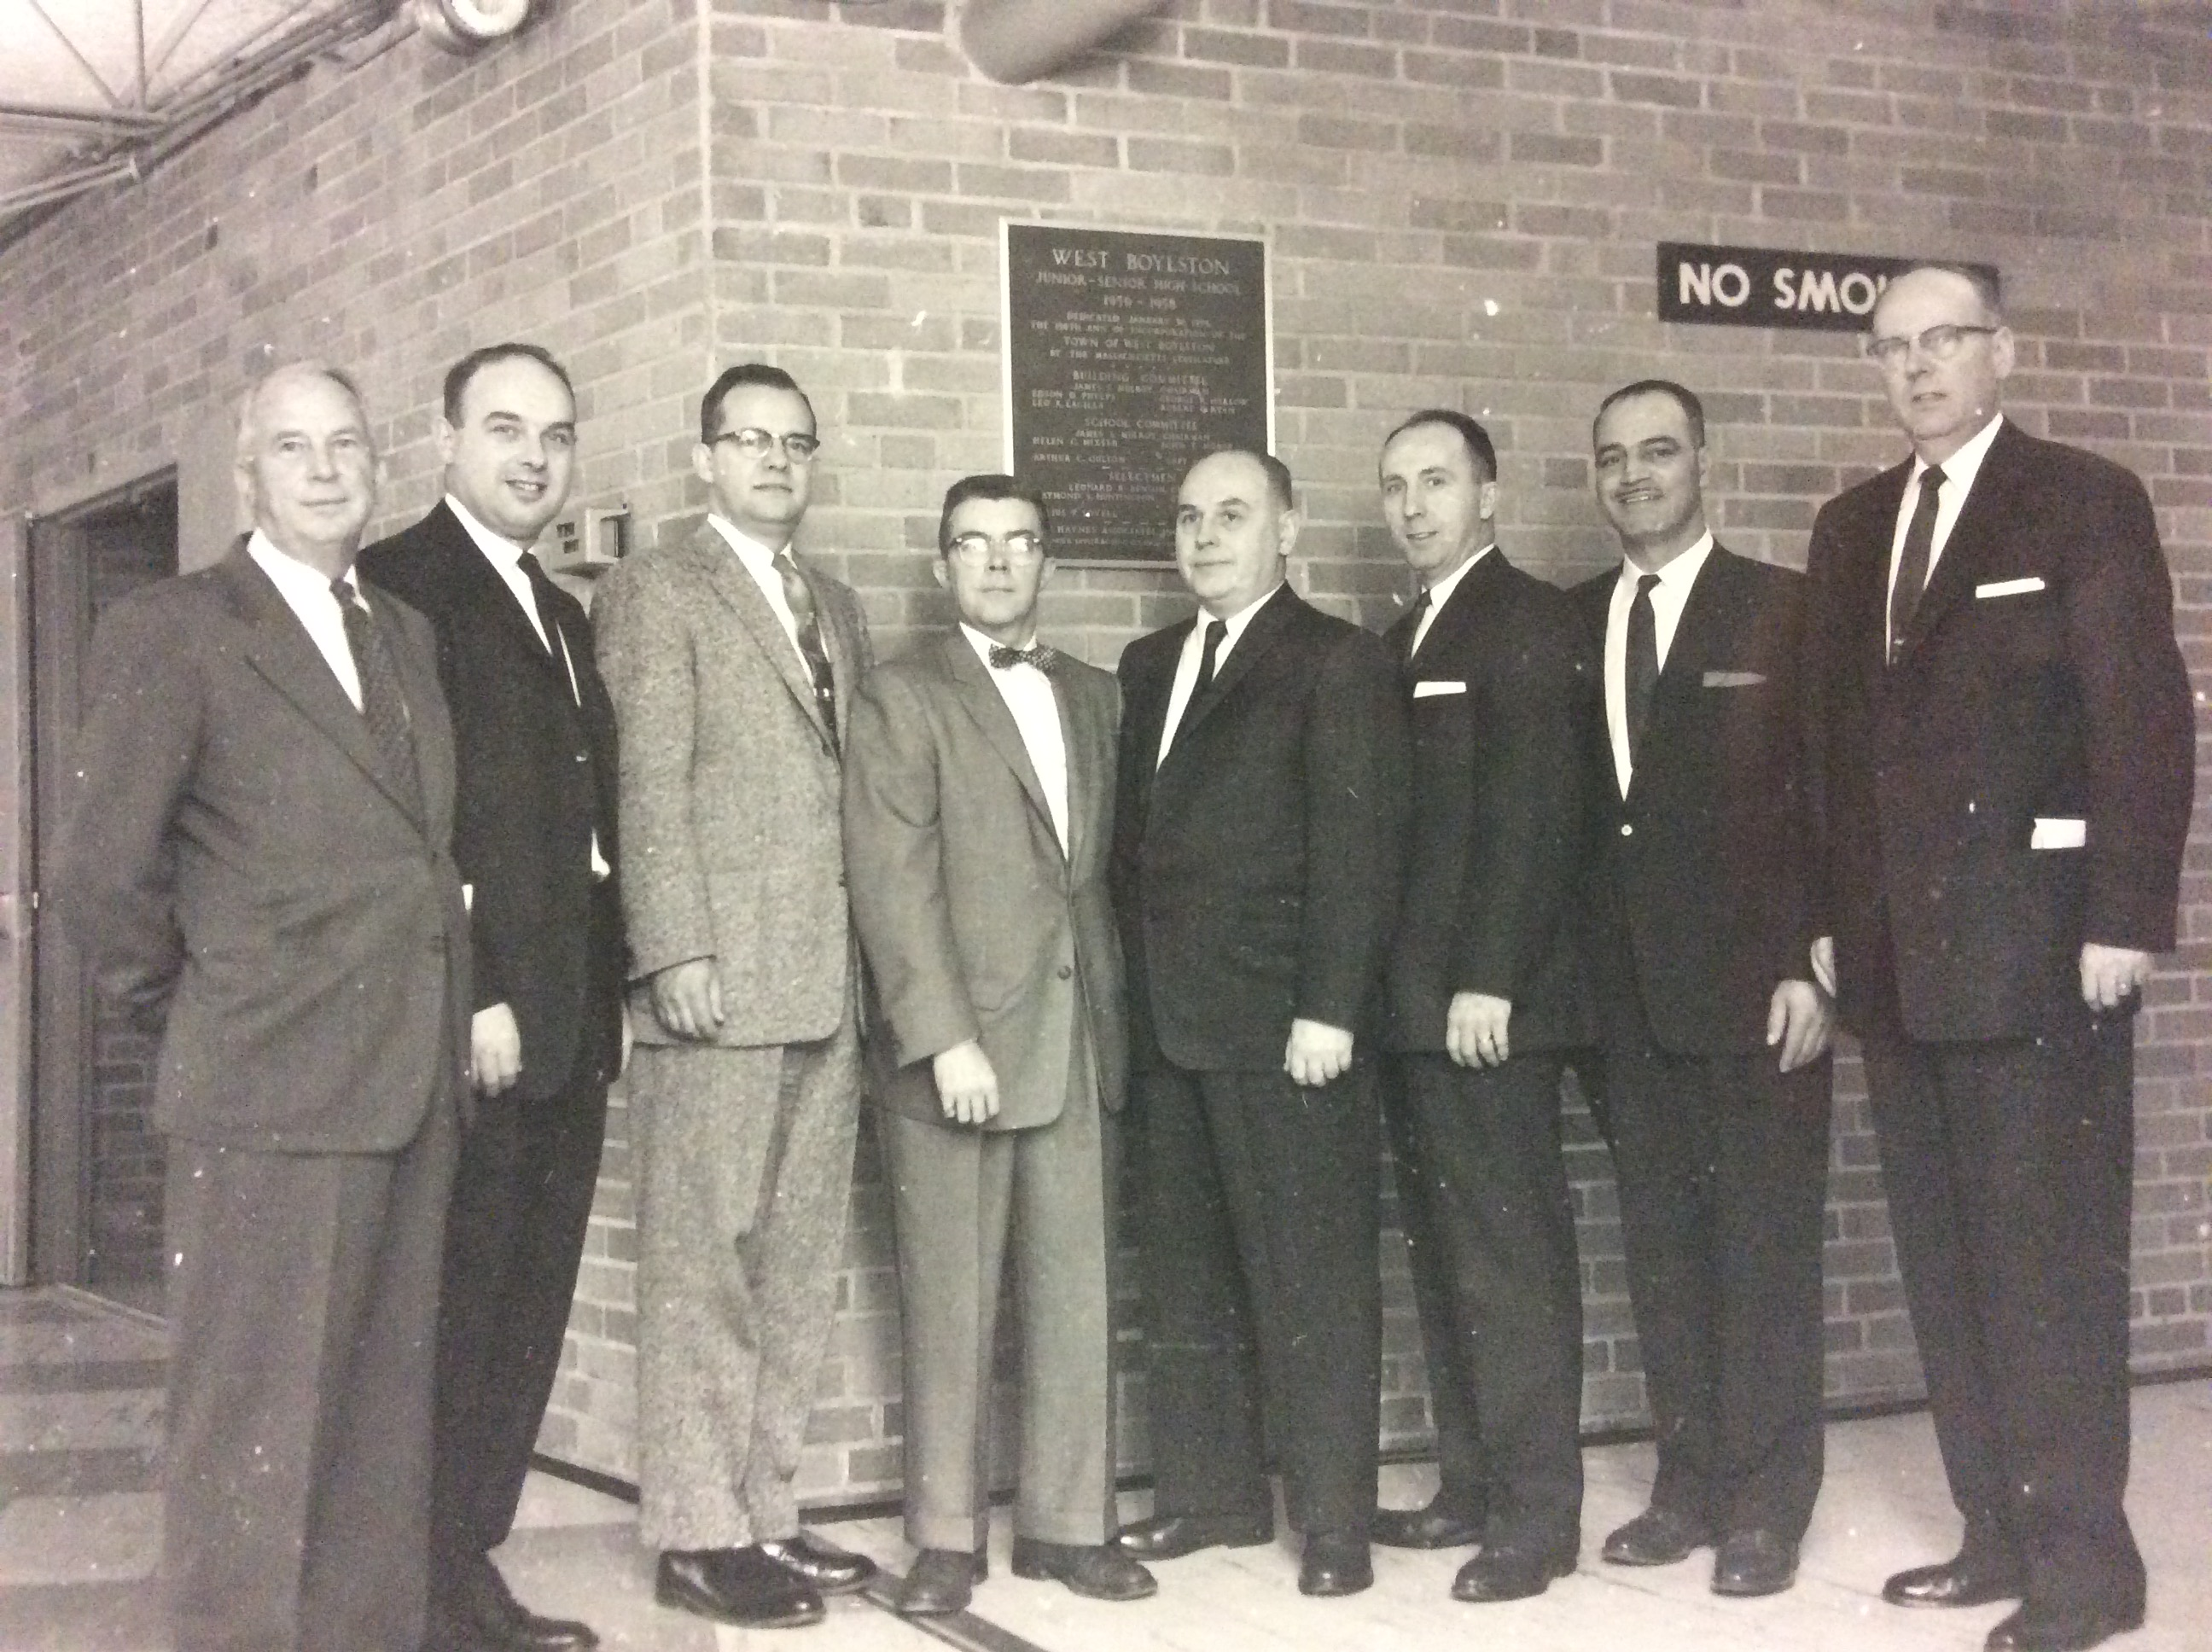 Photo of administrators at the dedication of the West Boylston High School